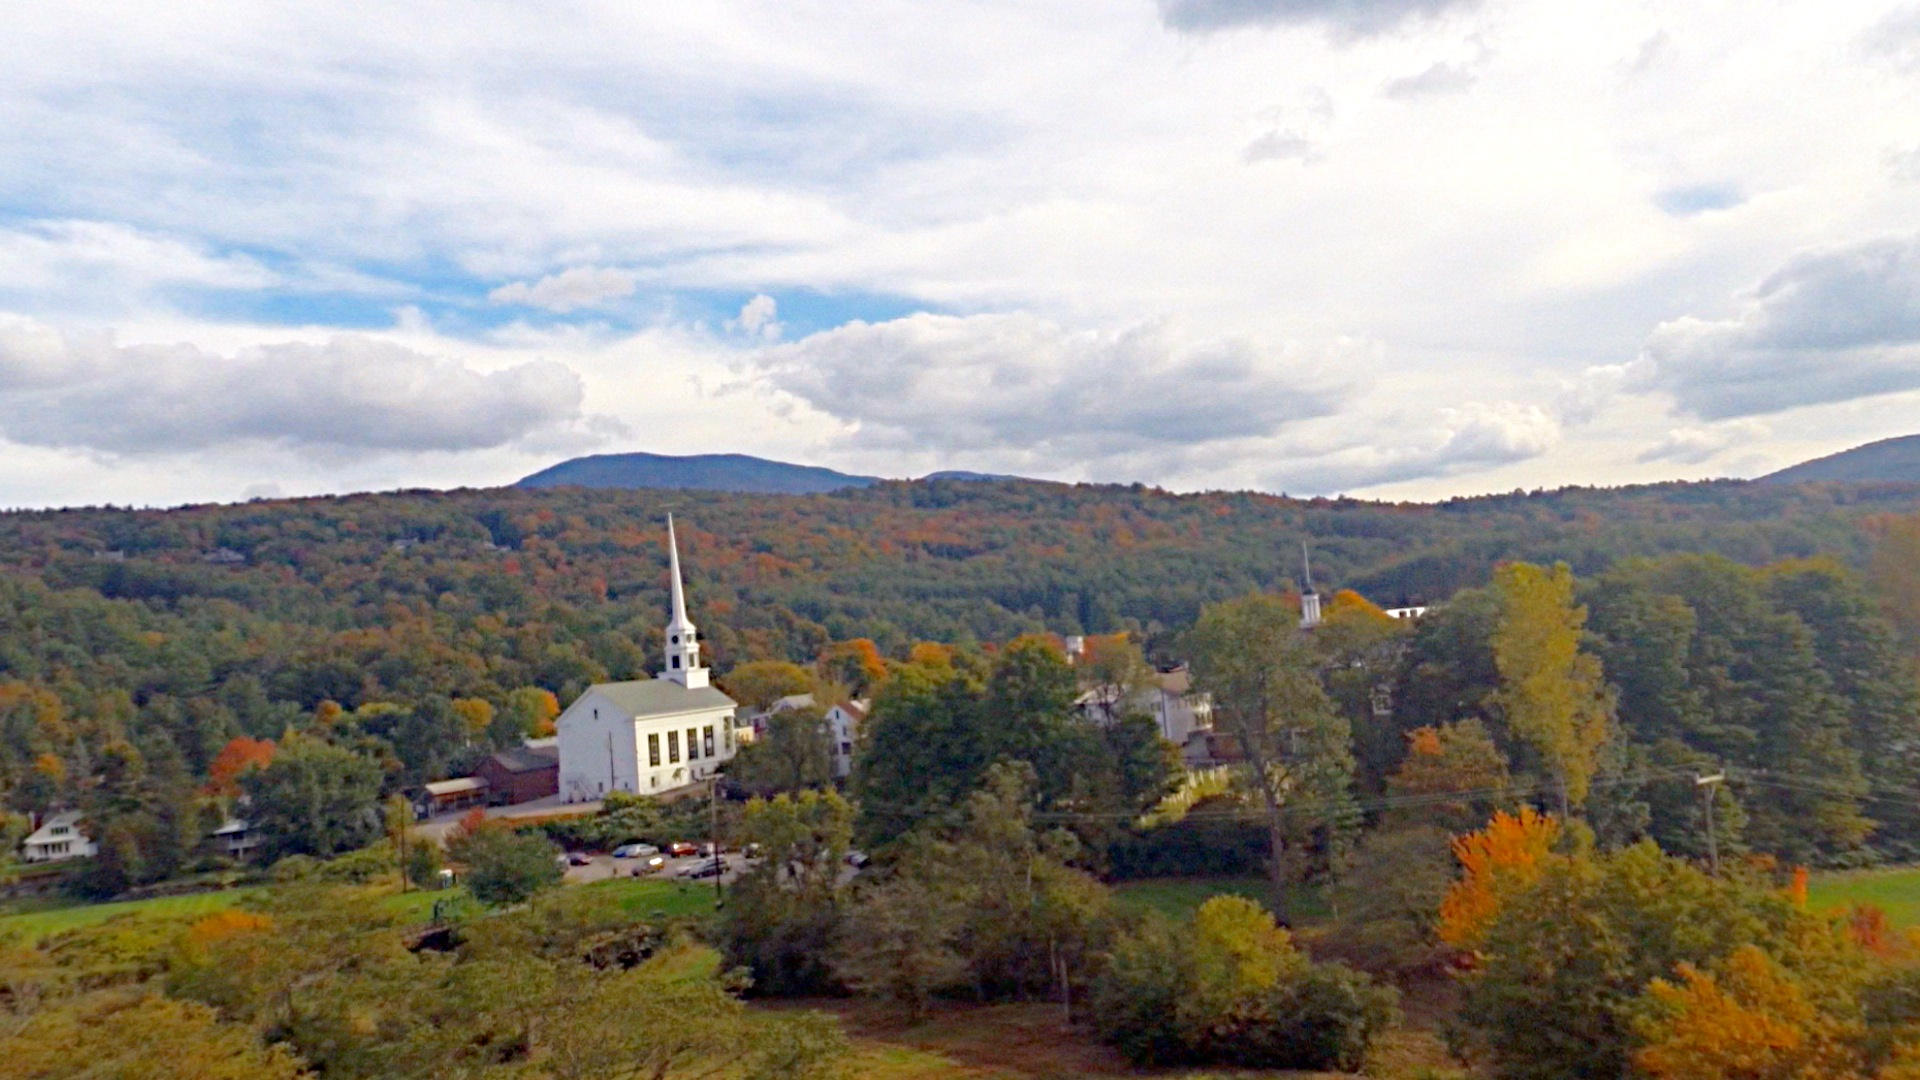 stowe foliage color september 25th, 2014